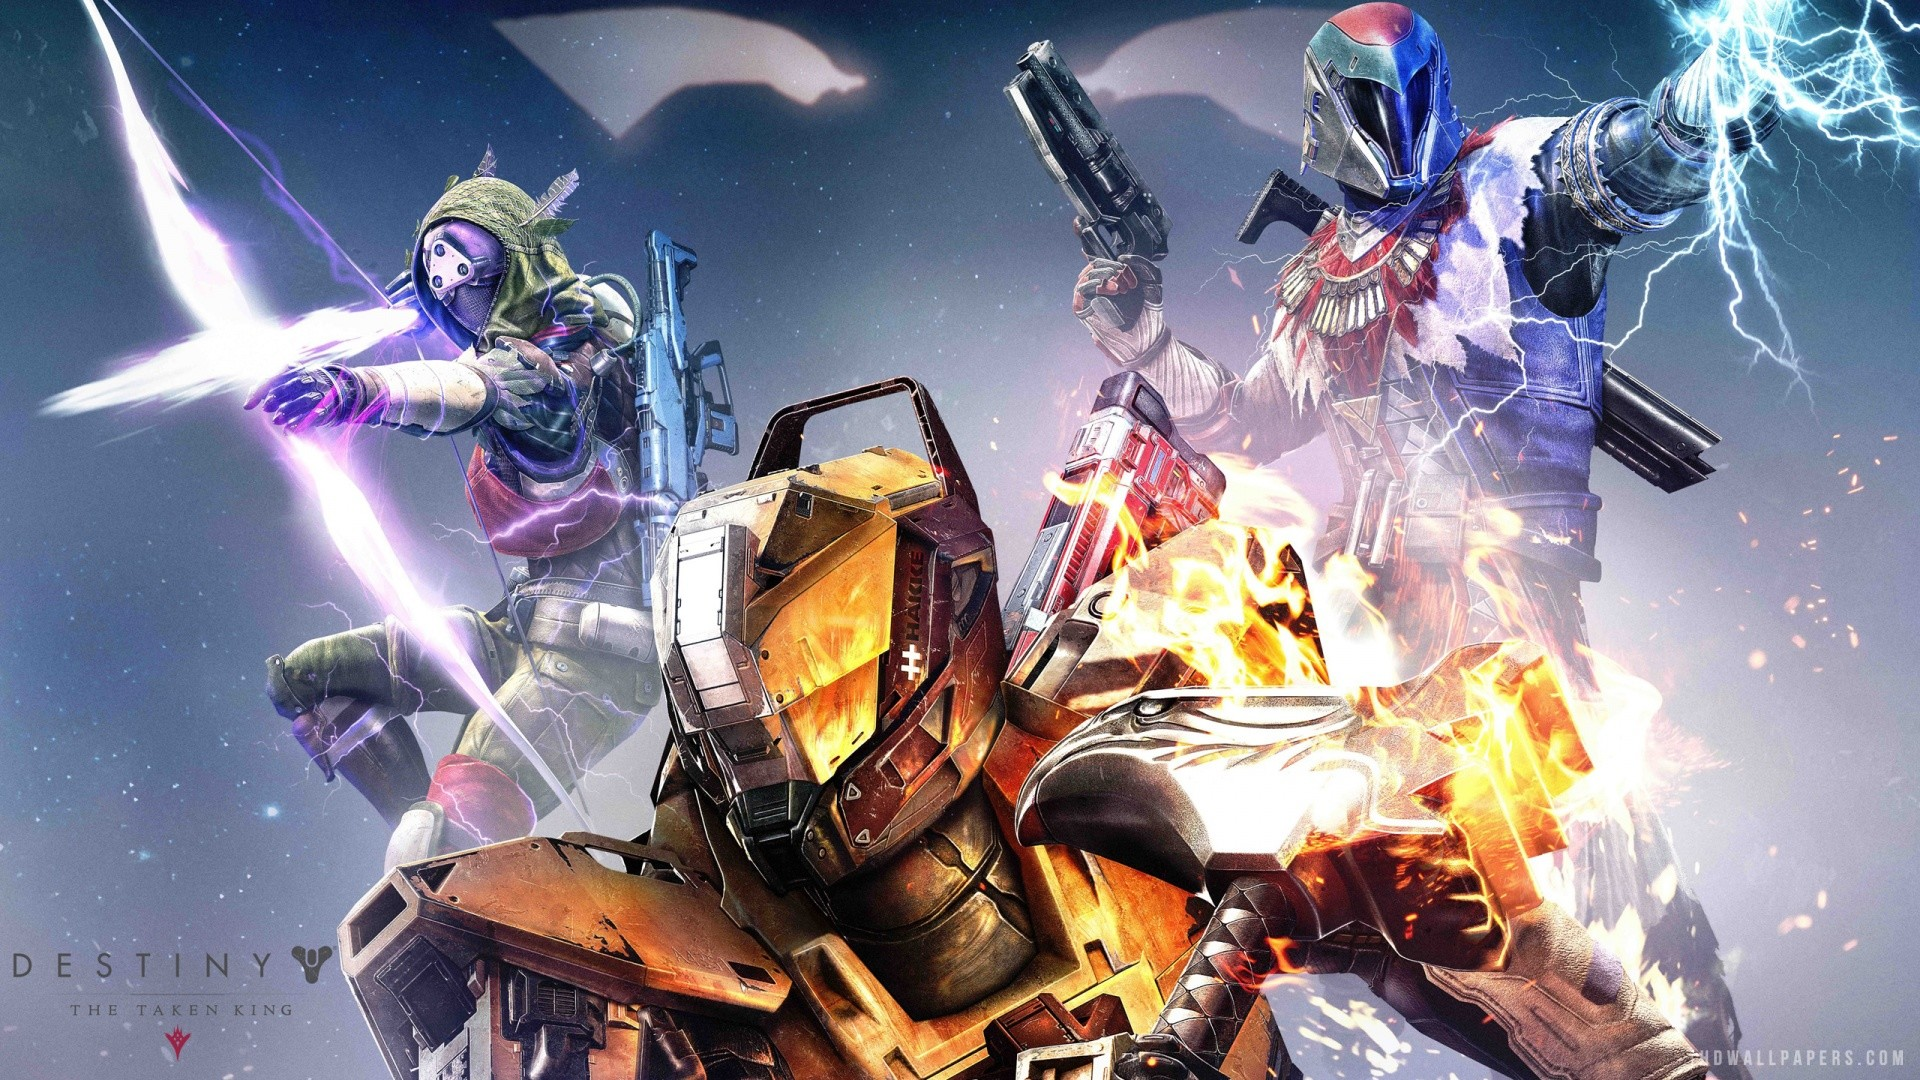 Destiny The Taken King Expansion HD Wallpaper – iHD Wallpapers